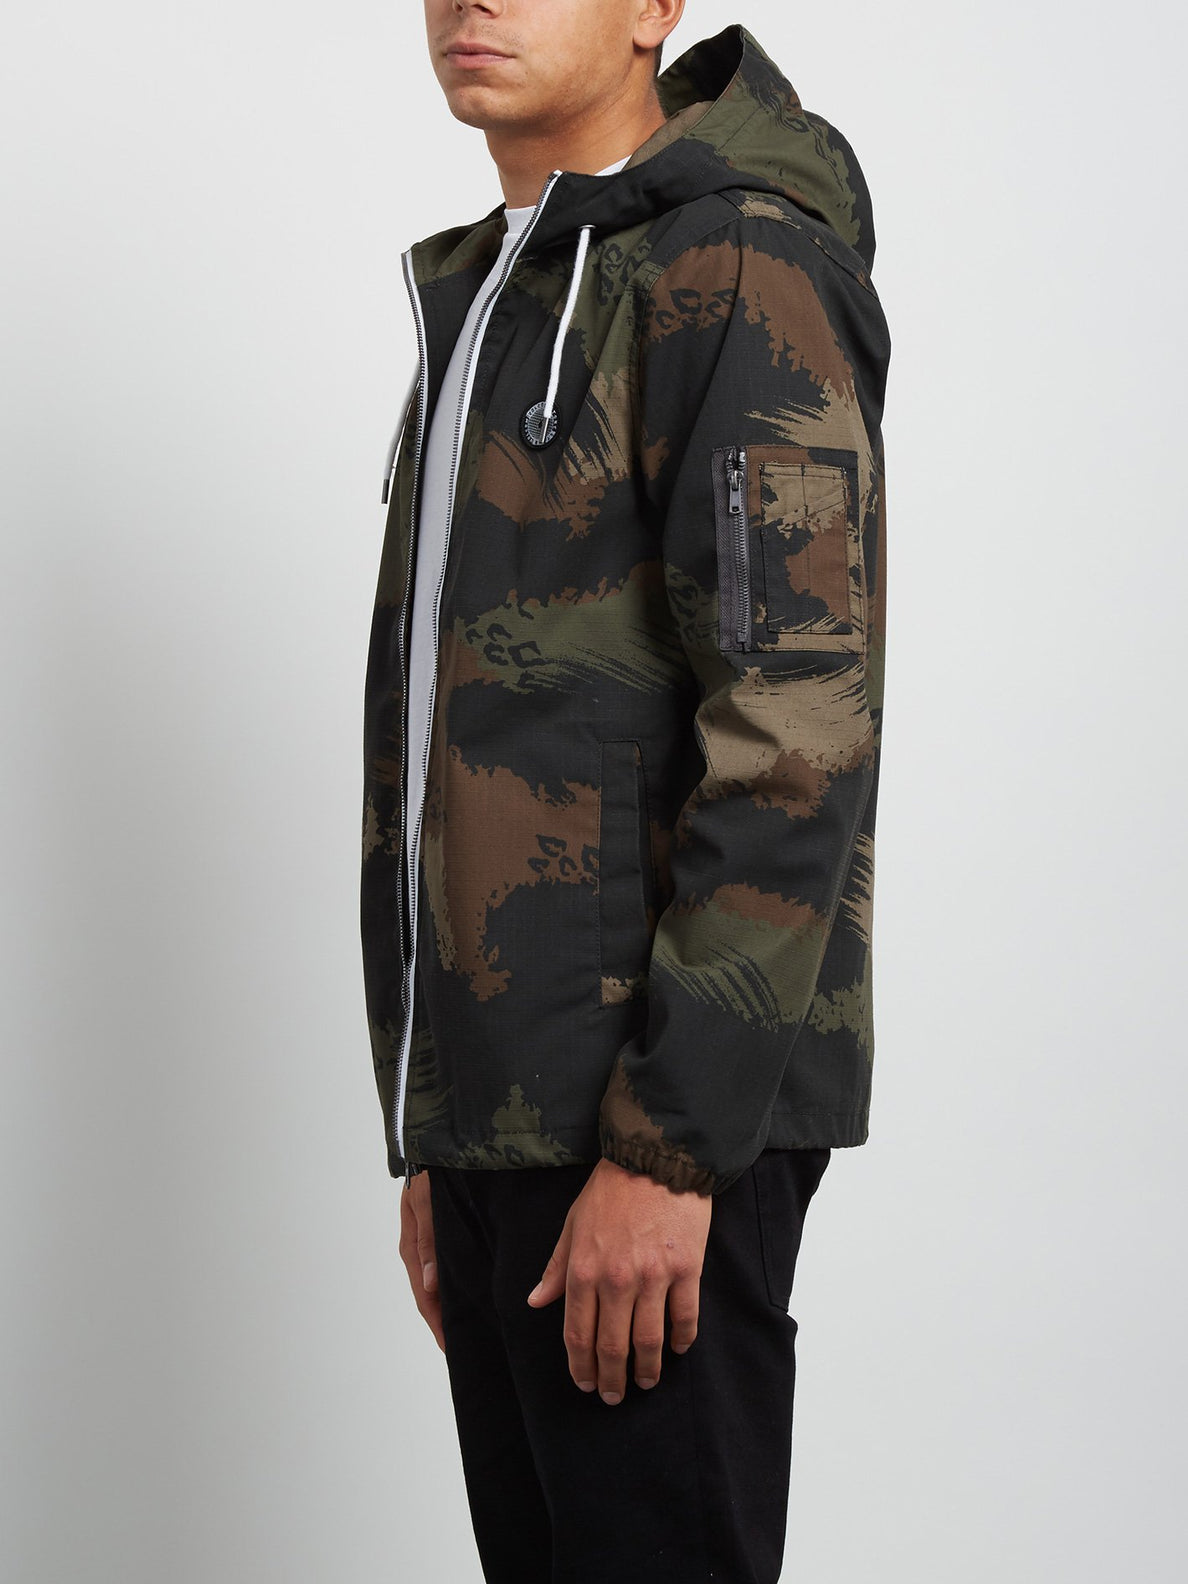 Ace Of Spade Jacket - Camouflage